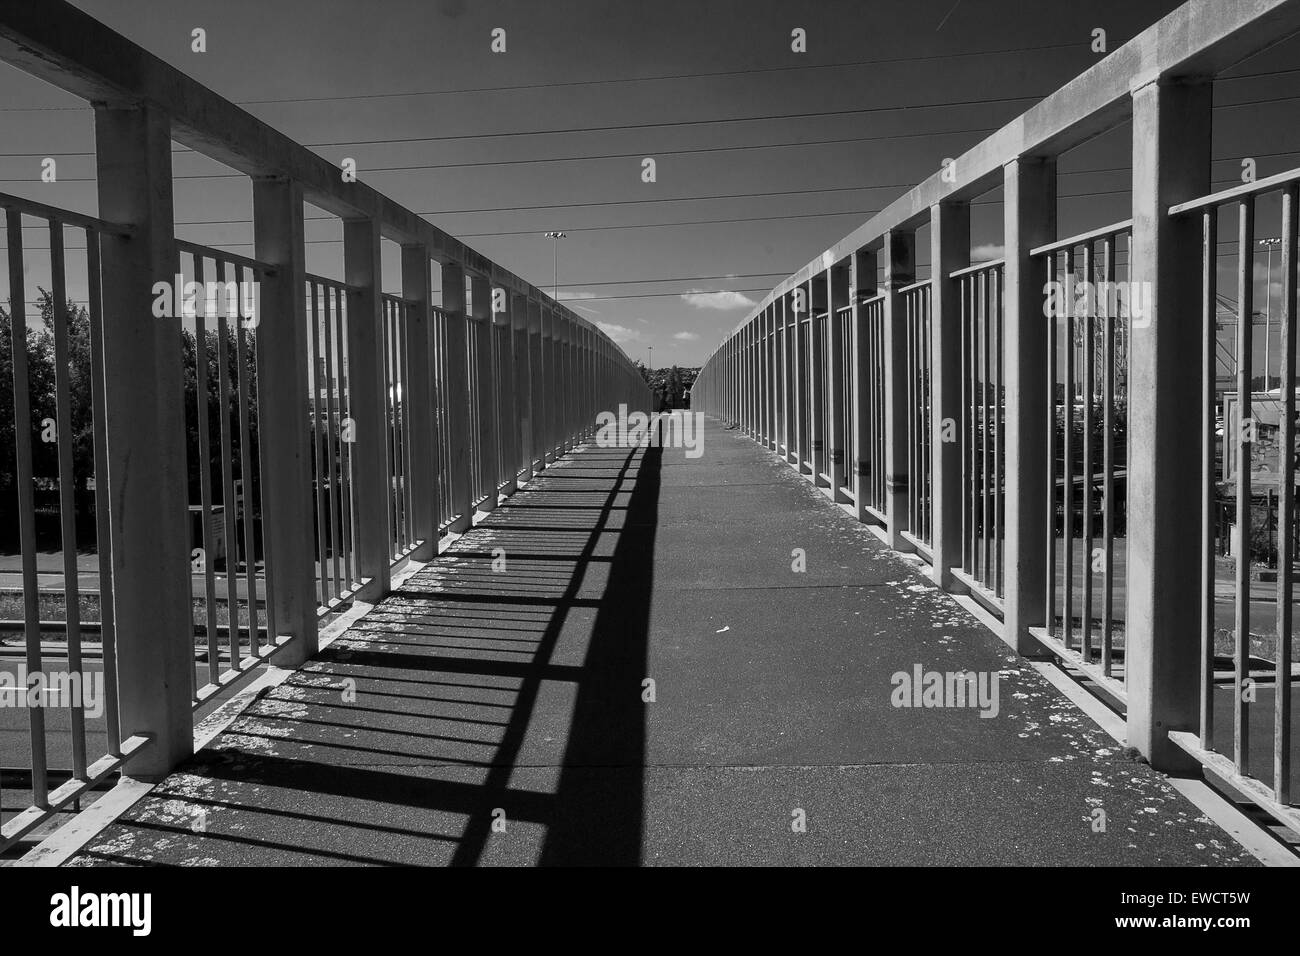 Footbridge over Millbrook Road, Southampton, UK  connecting Millbrook Station to both sides of a busy dual carriageway - Stock Image